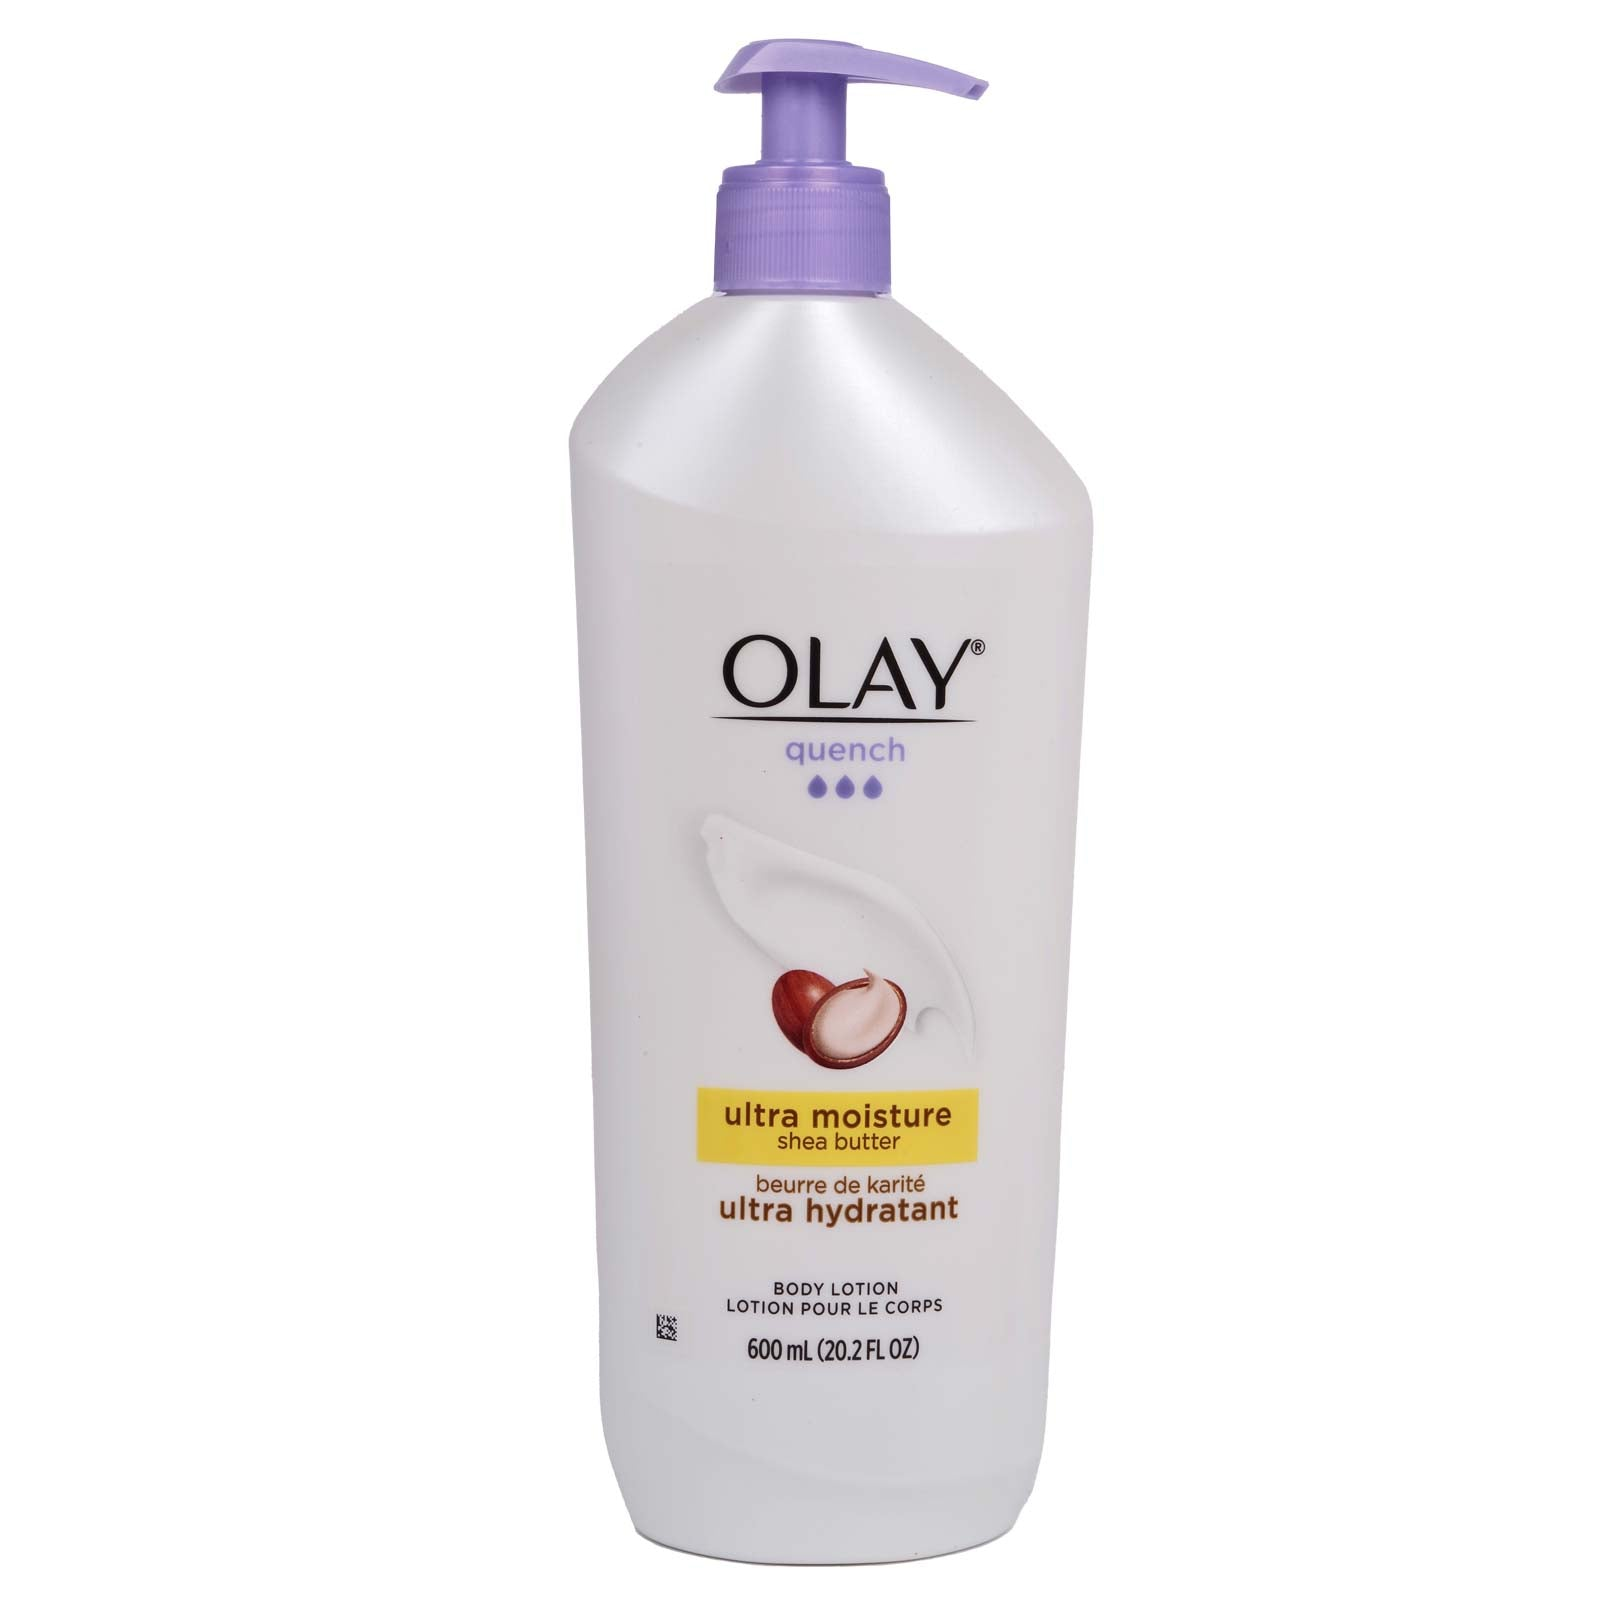 OLAY QUENCH BODY LOTION, ULT MISTURE SB (20.2oz/600ml) (12/cs)